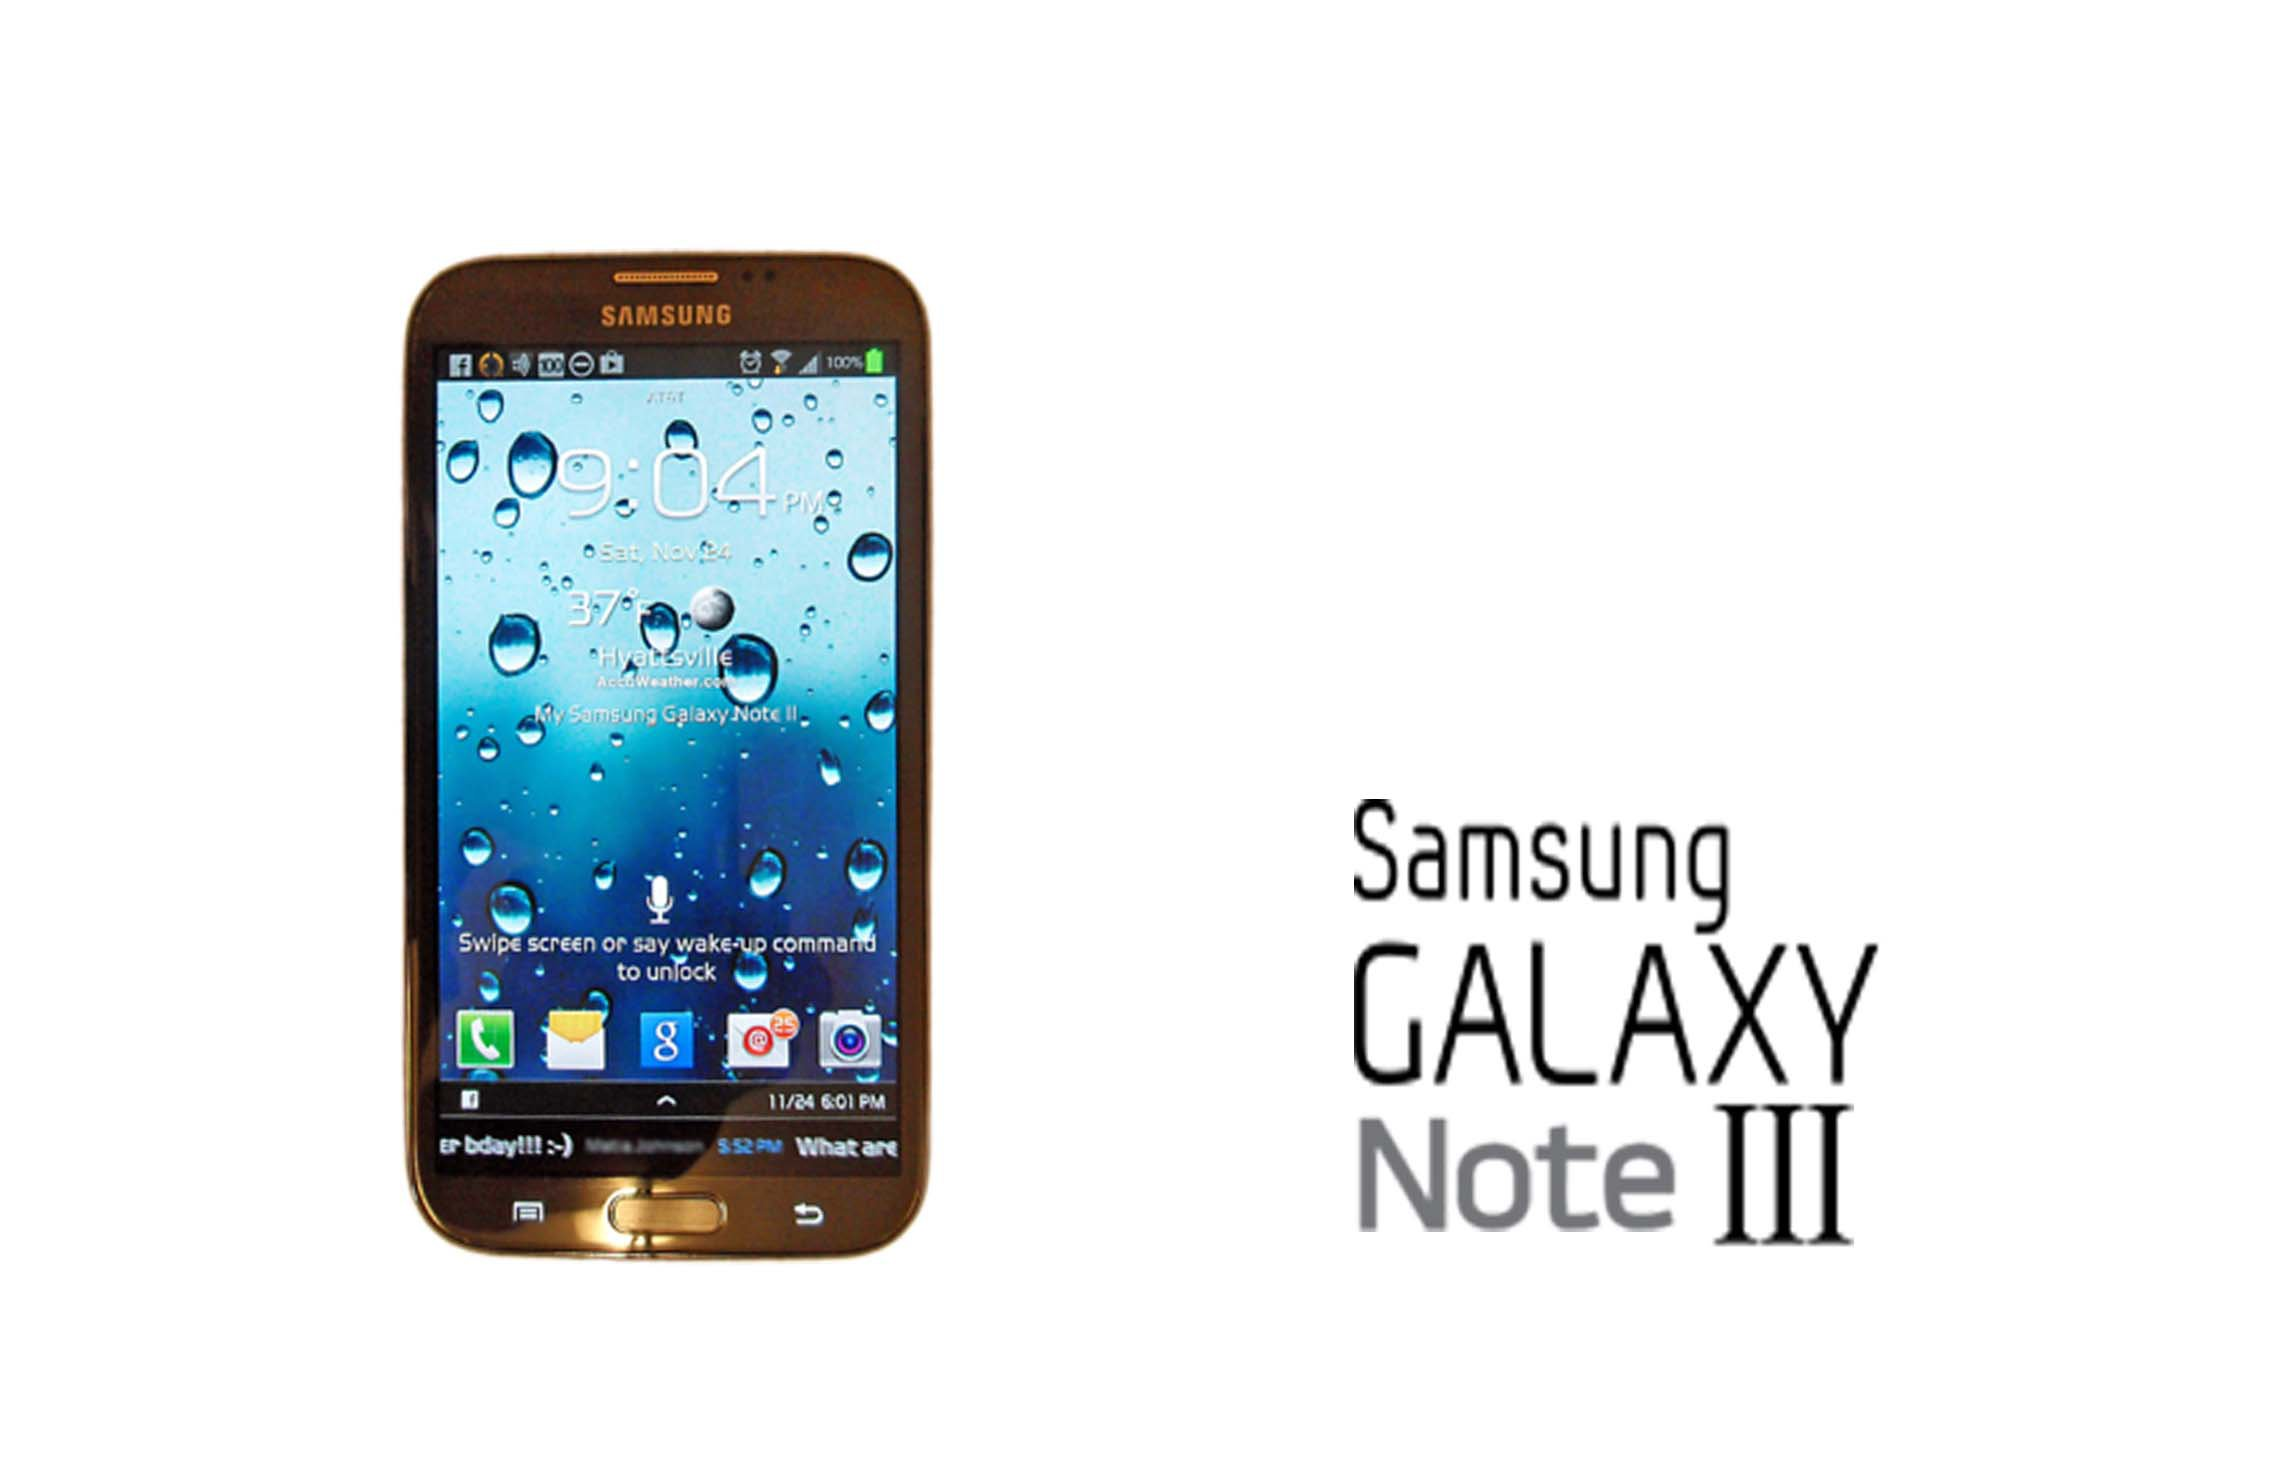 Samsung Galaxy Note III meluncur dibulan September